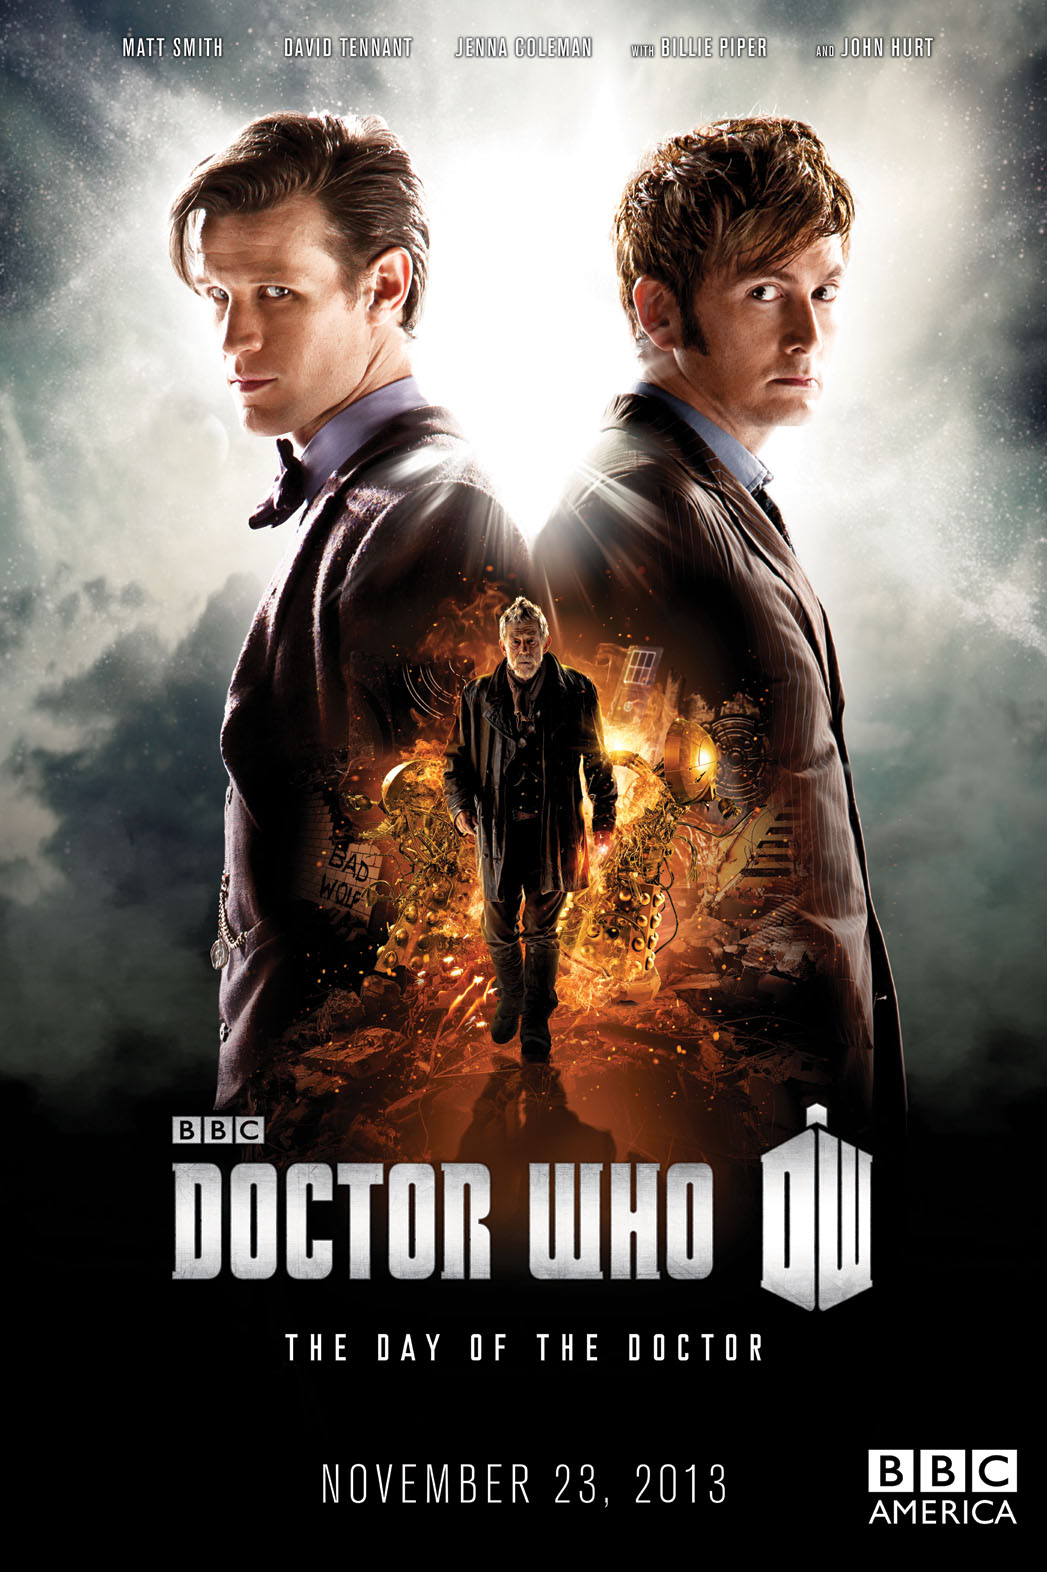 Doctor Who Poster Art - P 2013